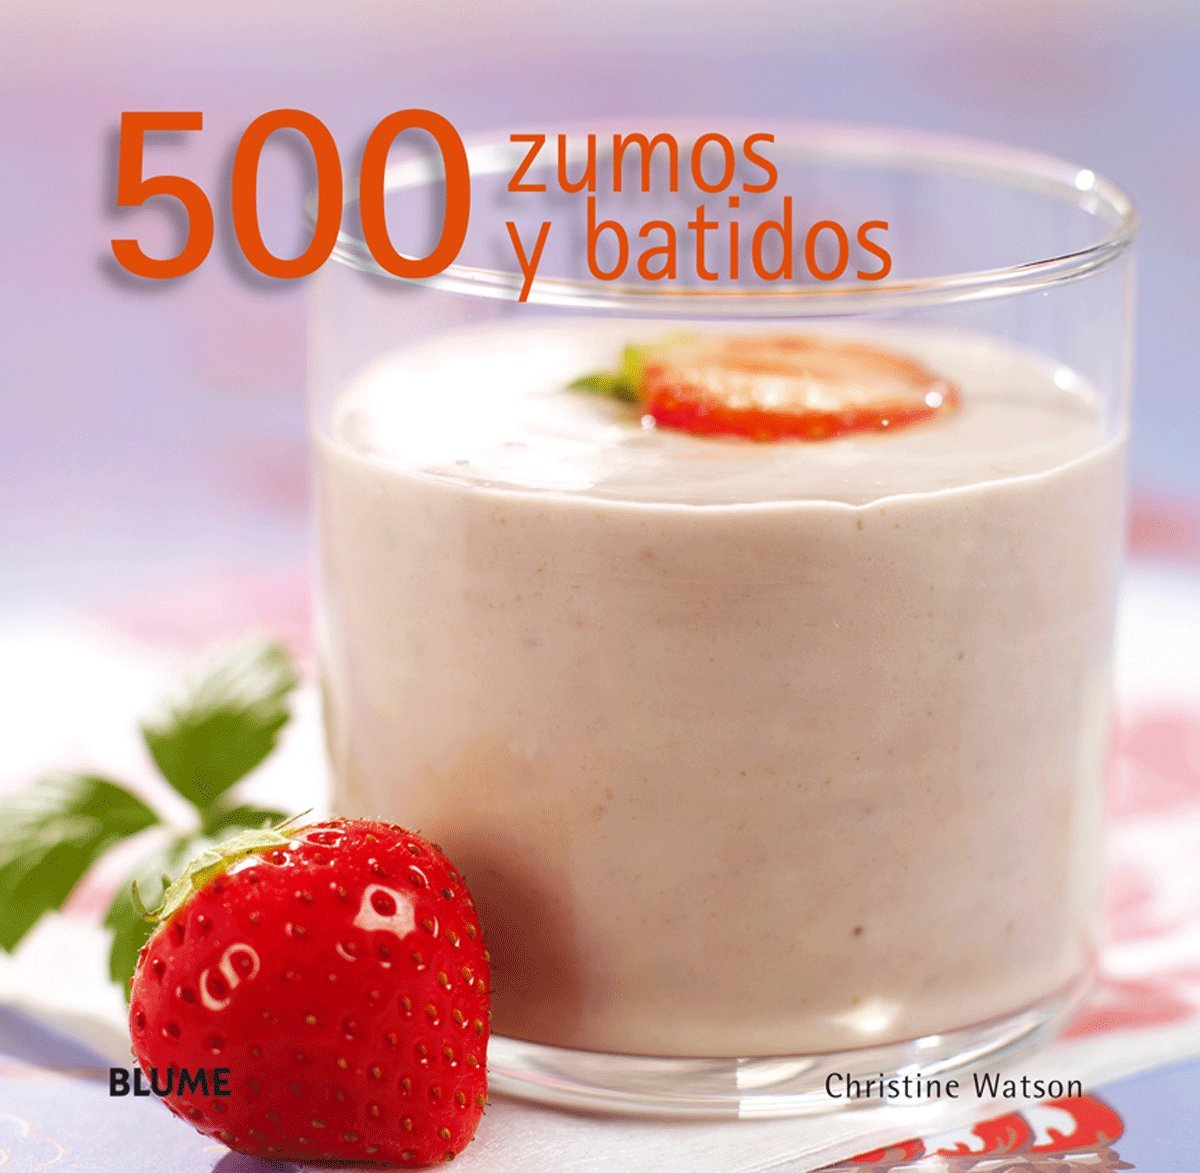 500 ZUMOS Y BATIDOS (Spanish Edition): WATSON CHRISTINE: 9788480767934: Amazon.com: Books